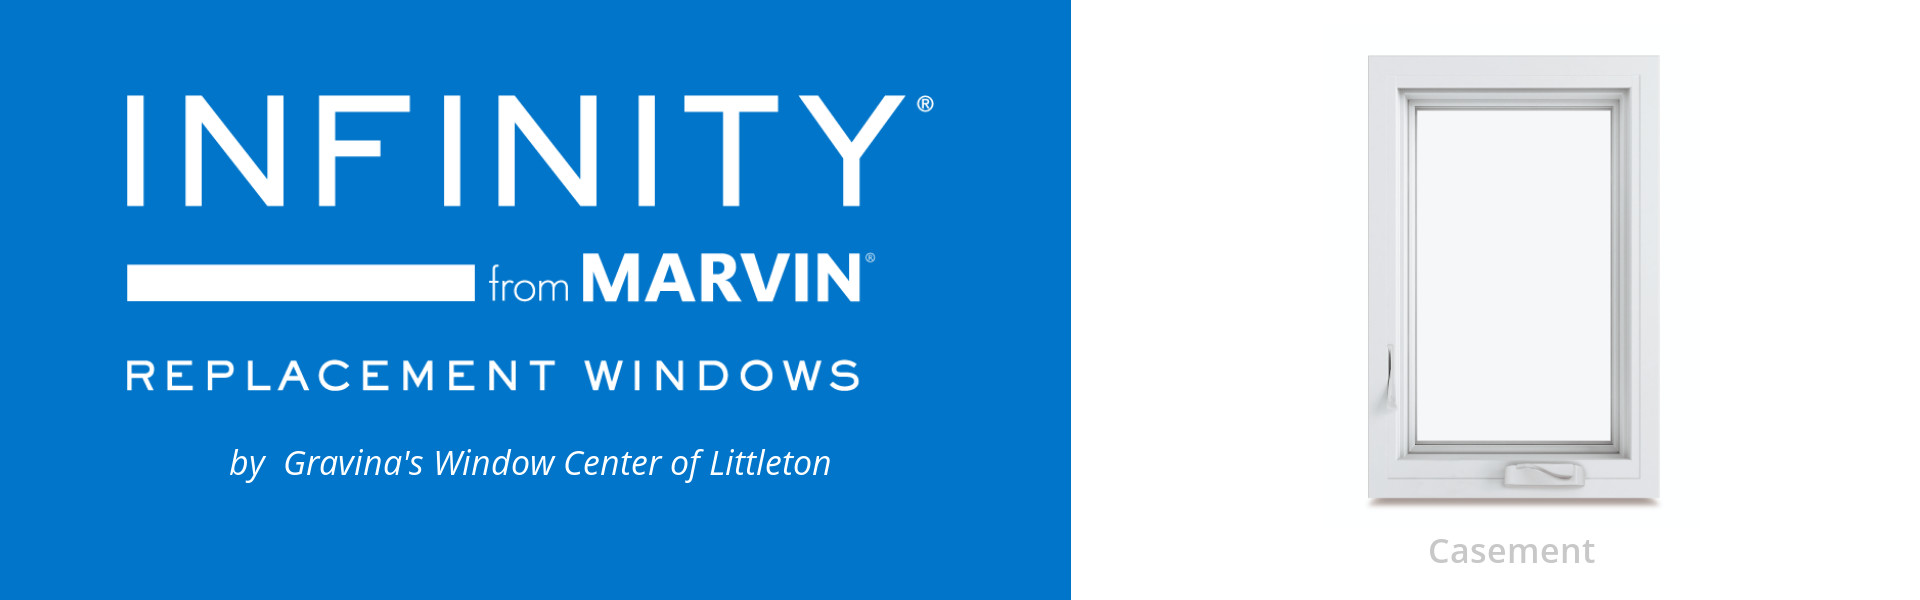 Infinity from Marvin Casement Windows